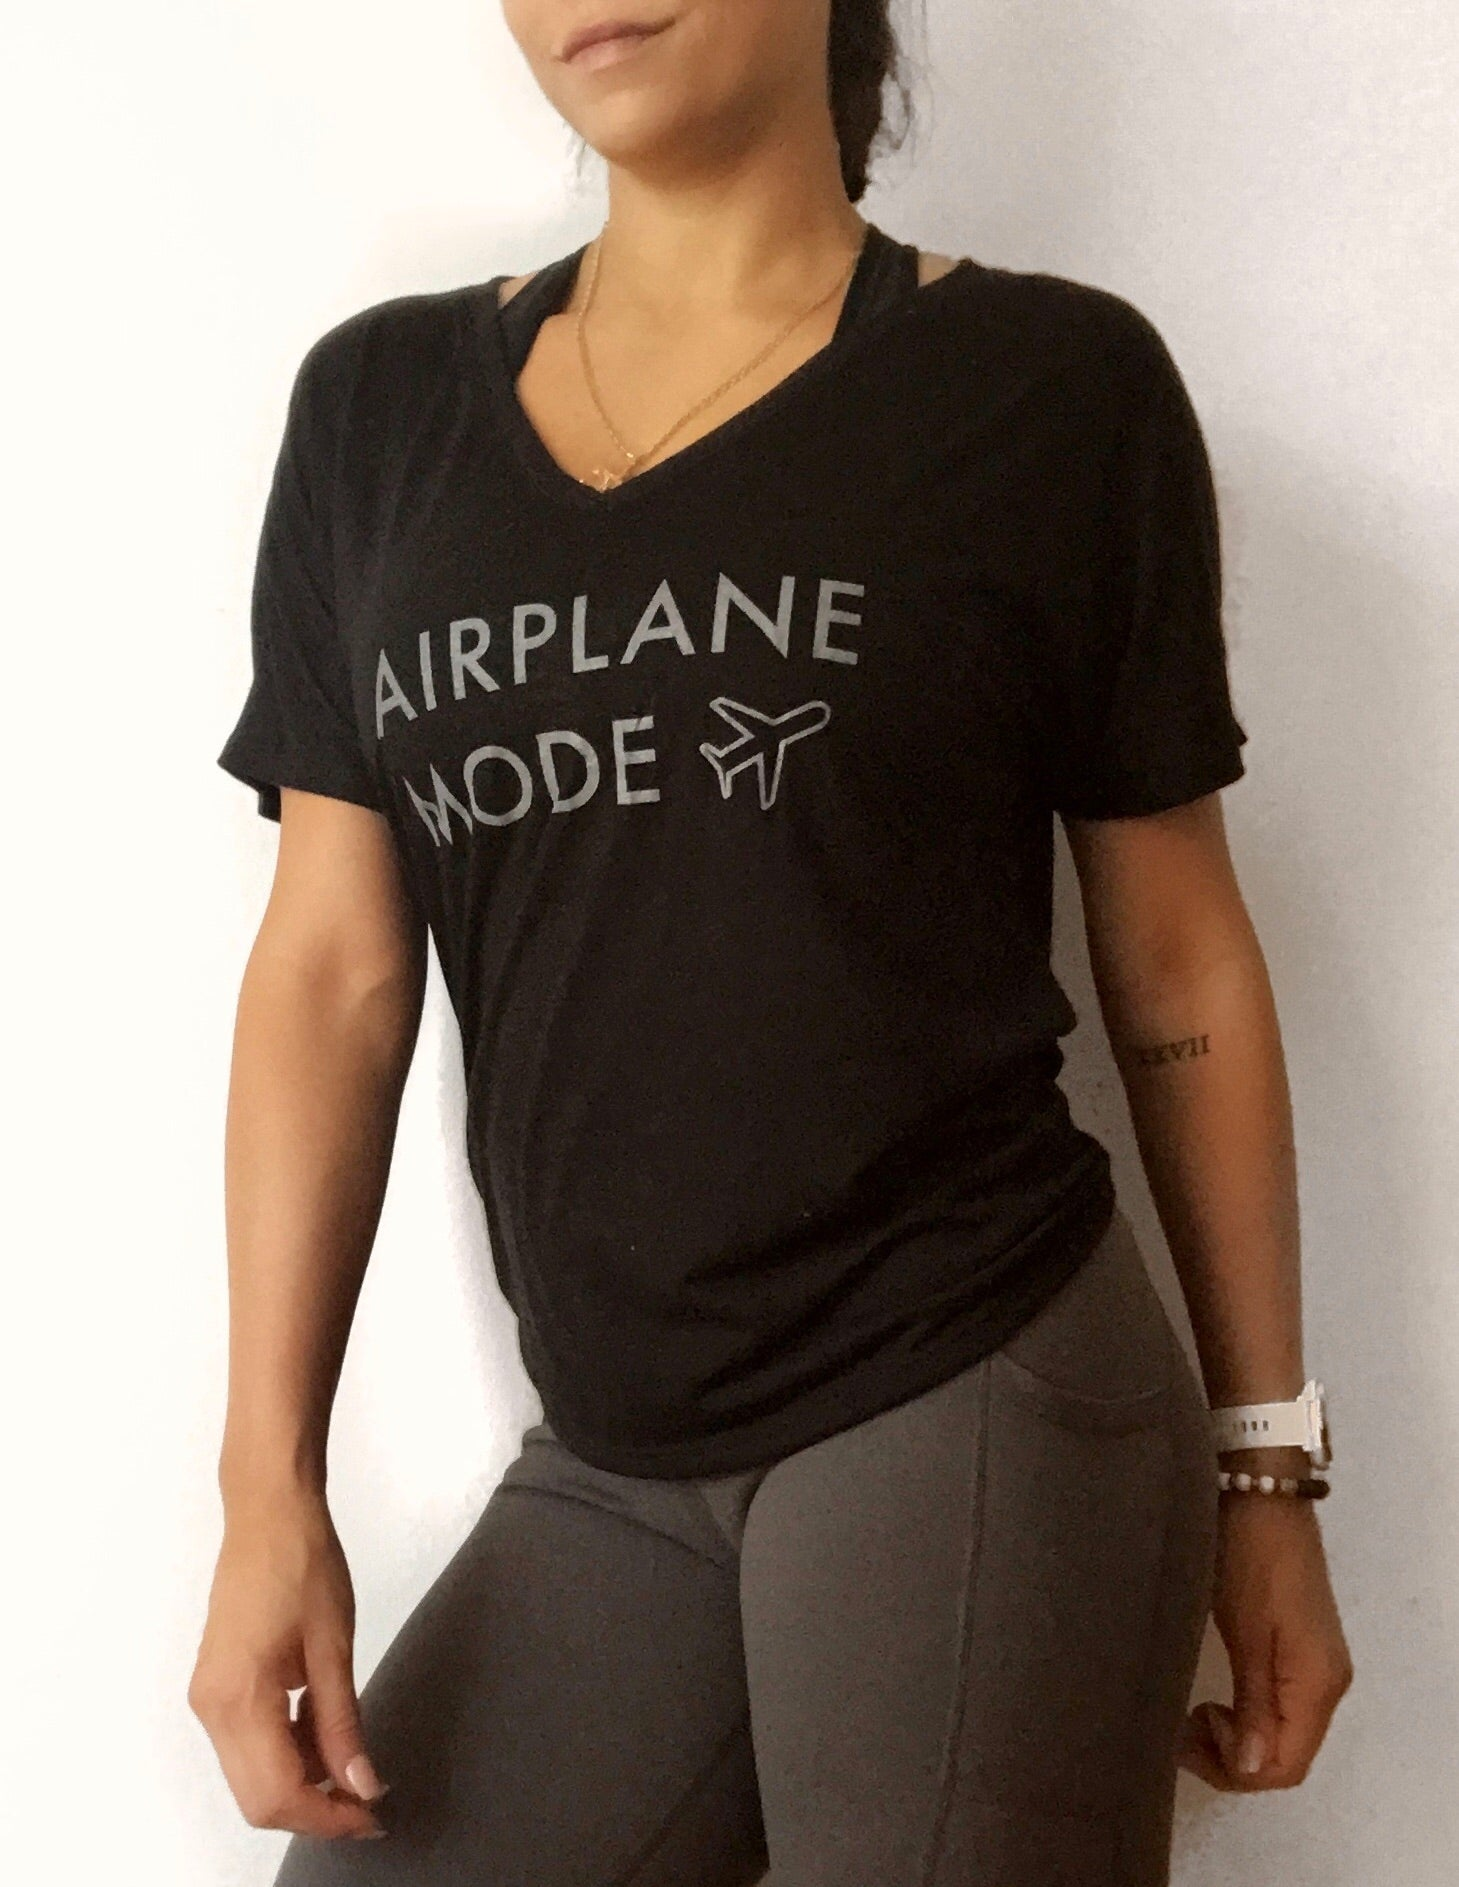 Airplane Mode {Women's T-shirt}